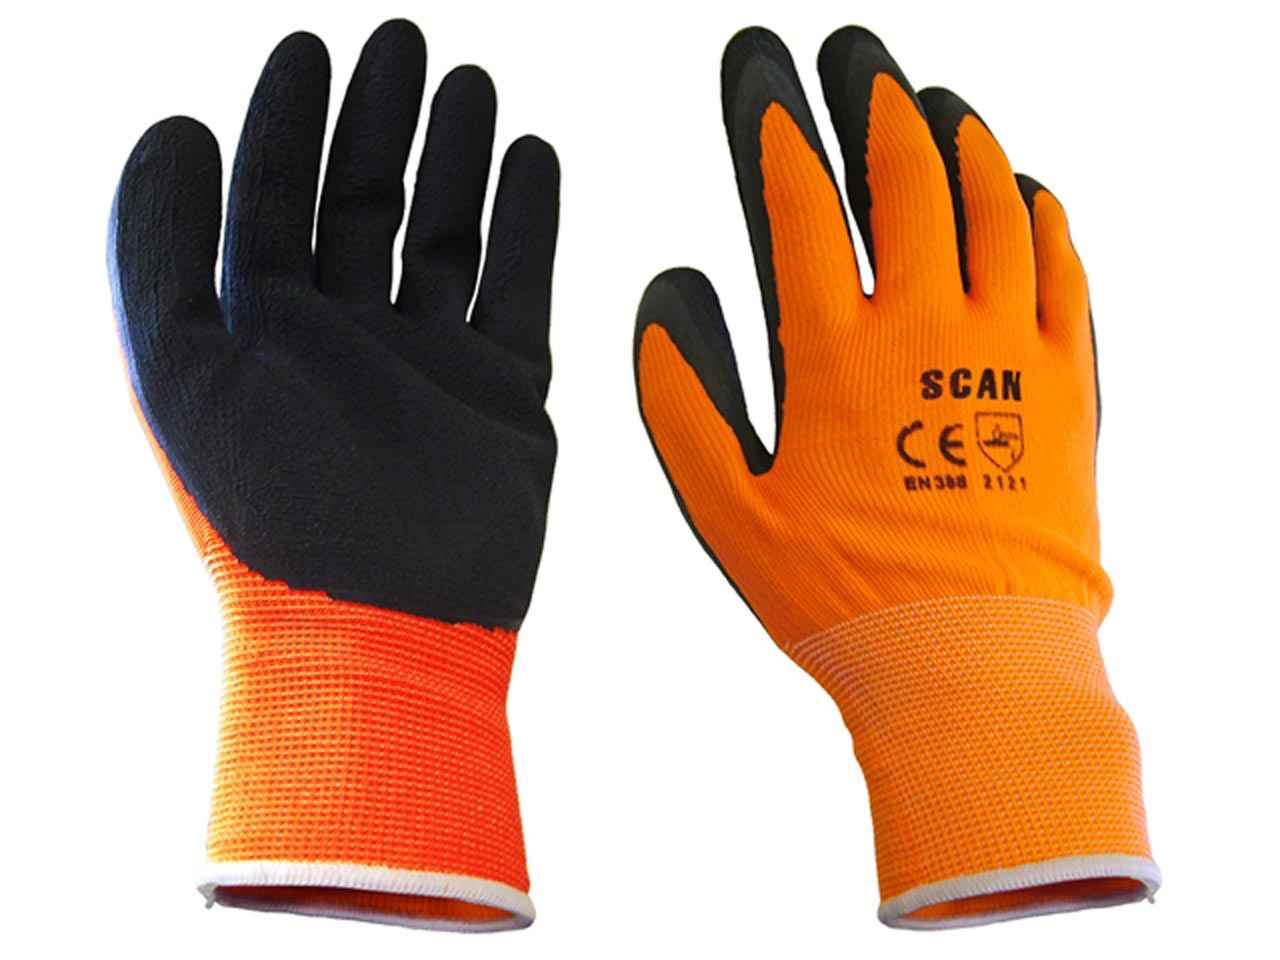 Garden Clothing & Gear Scan Hi-vis Orange Foam Latex Coated Gloves Size 8 Medium